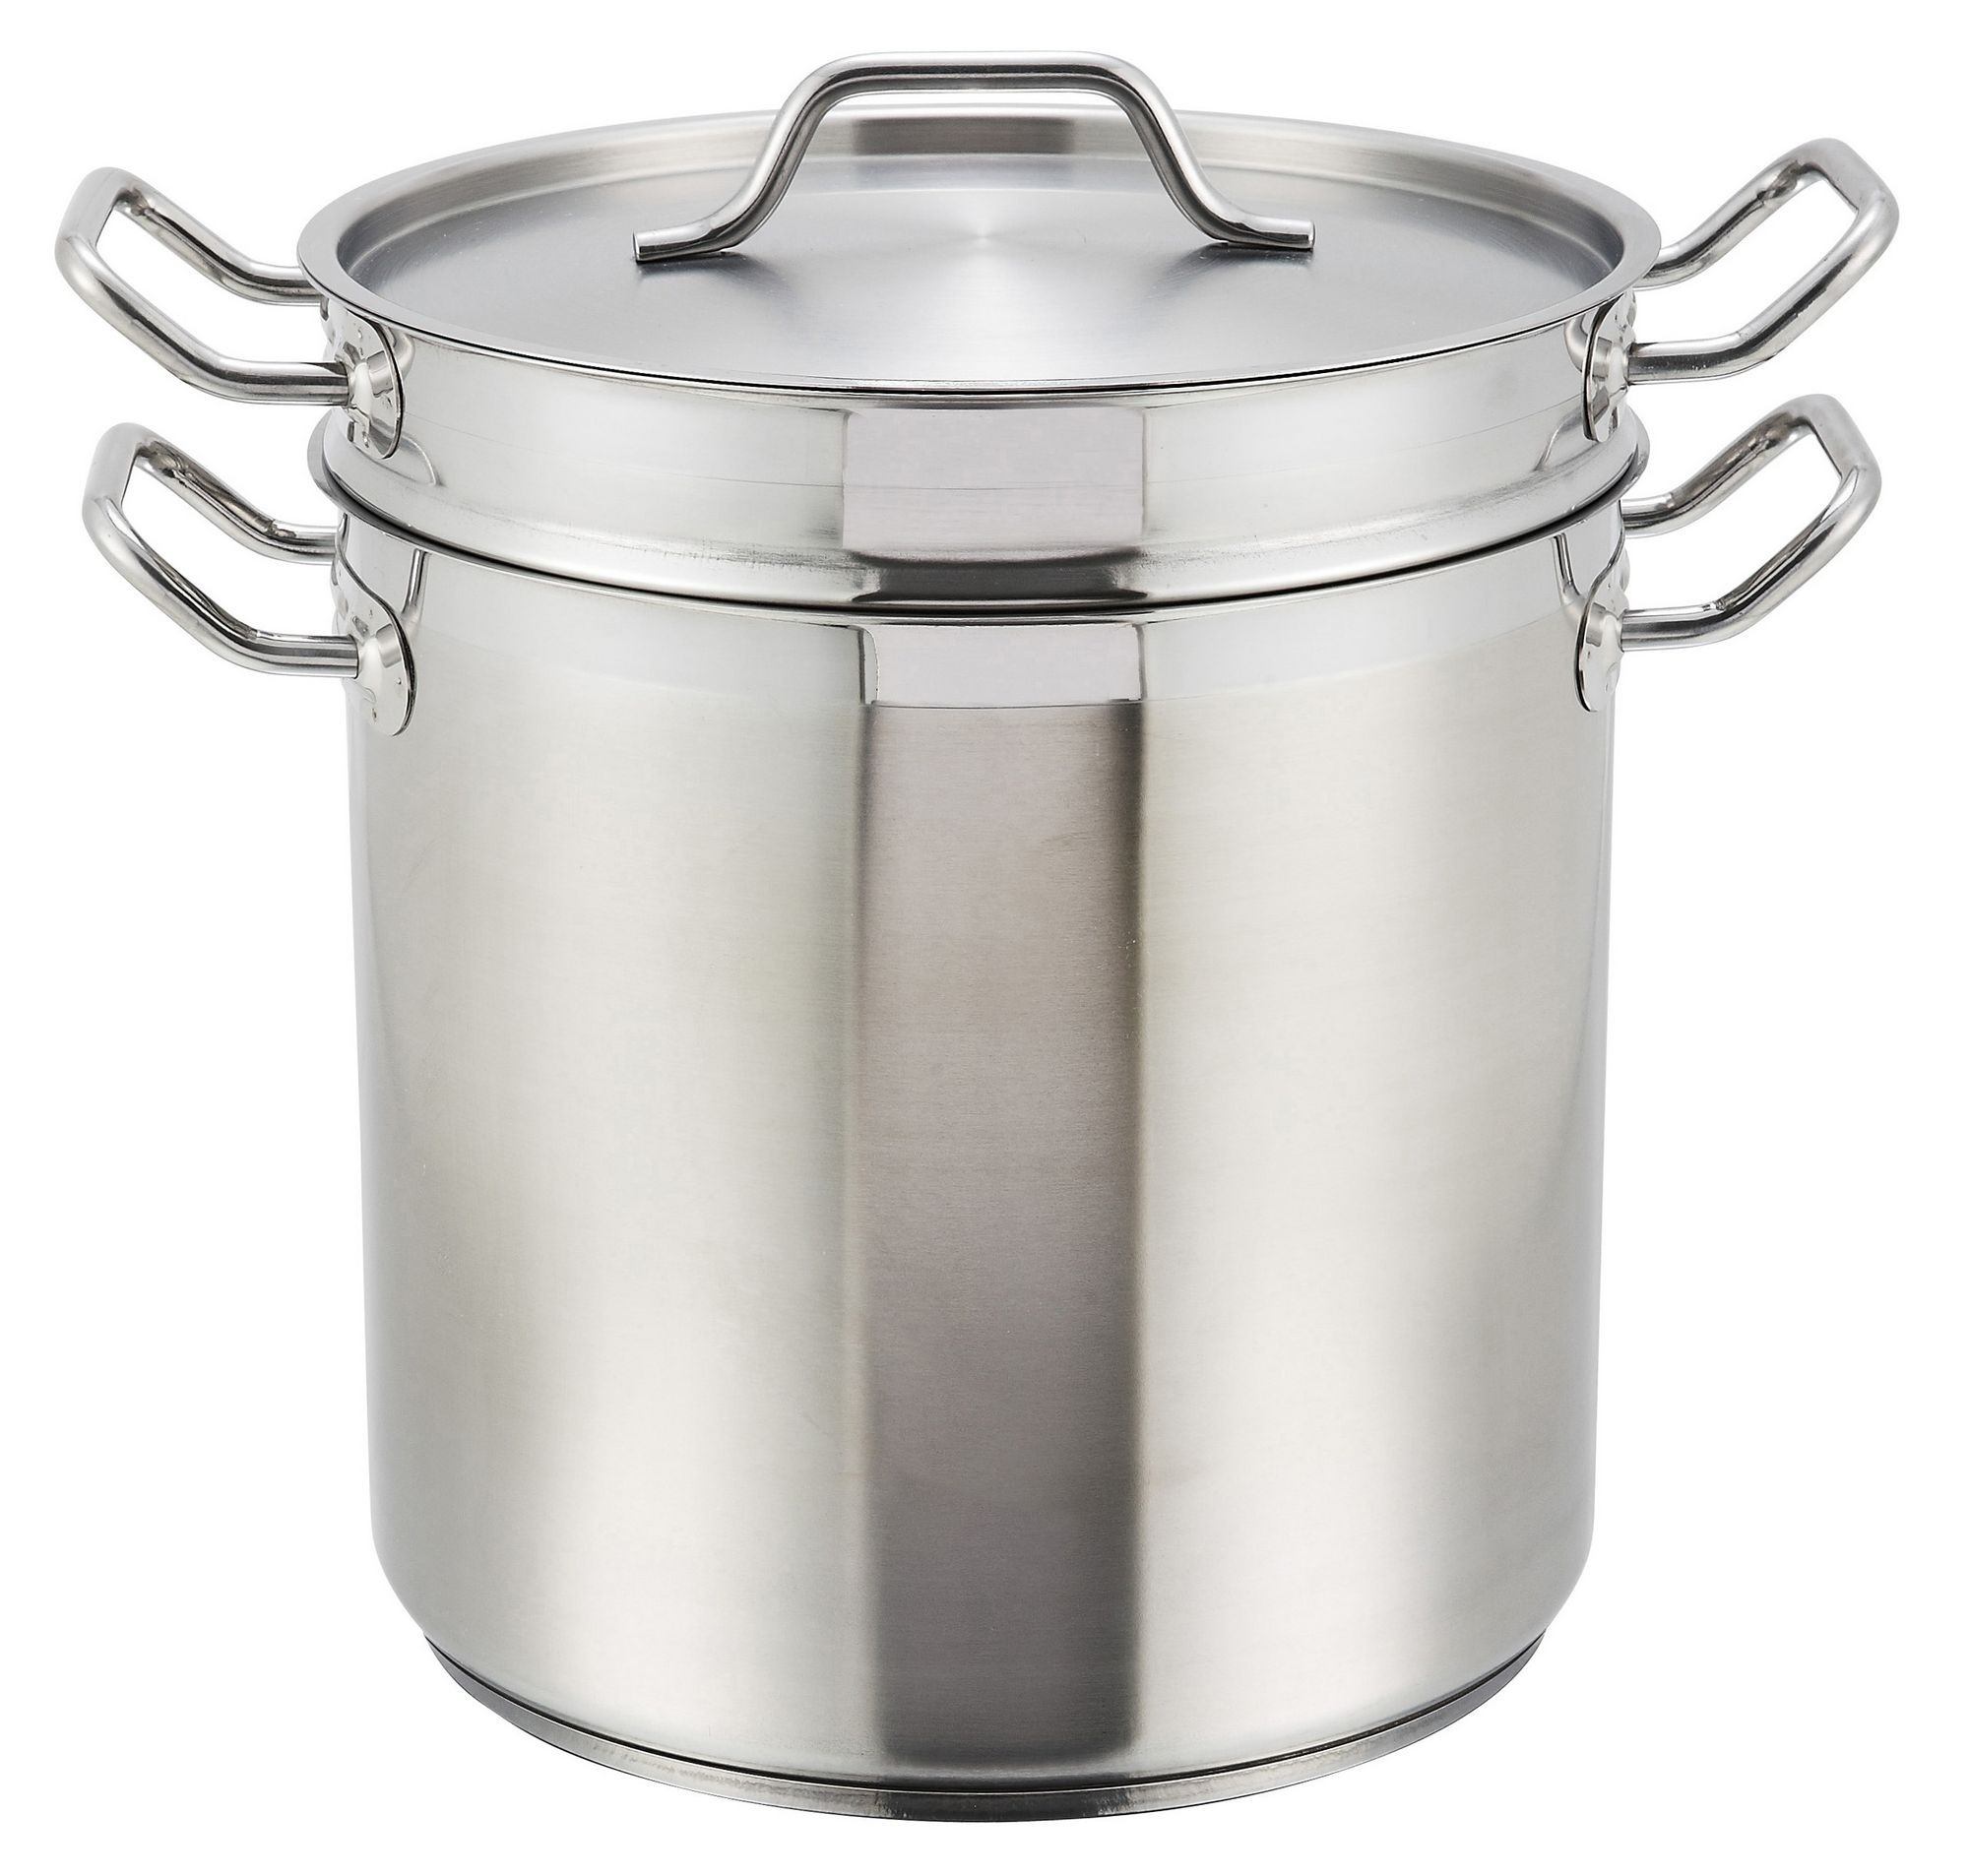 Winco SSDB-8 Stainless Steel 8 Qt. Double Boiler with Cover